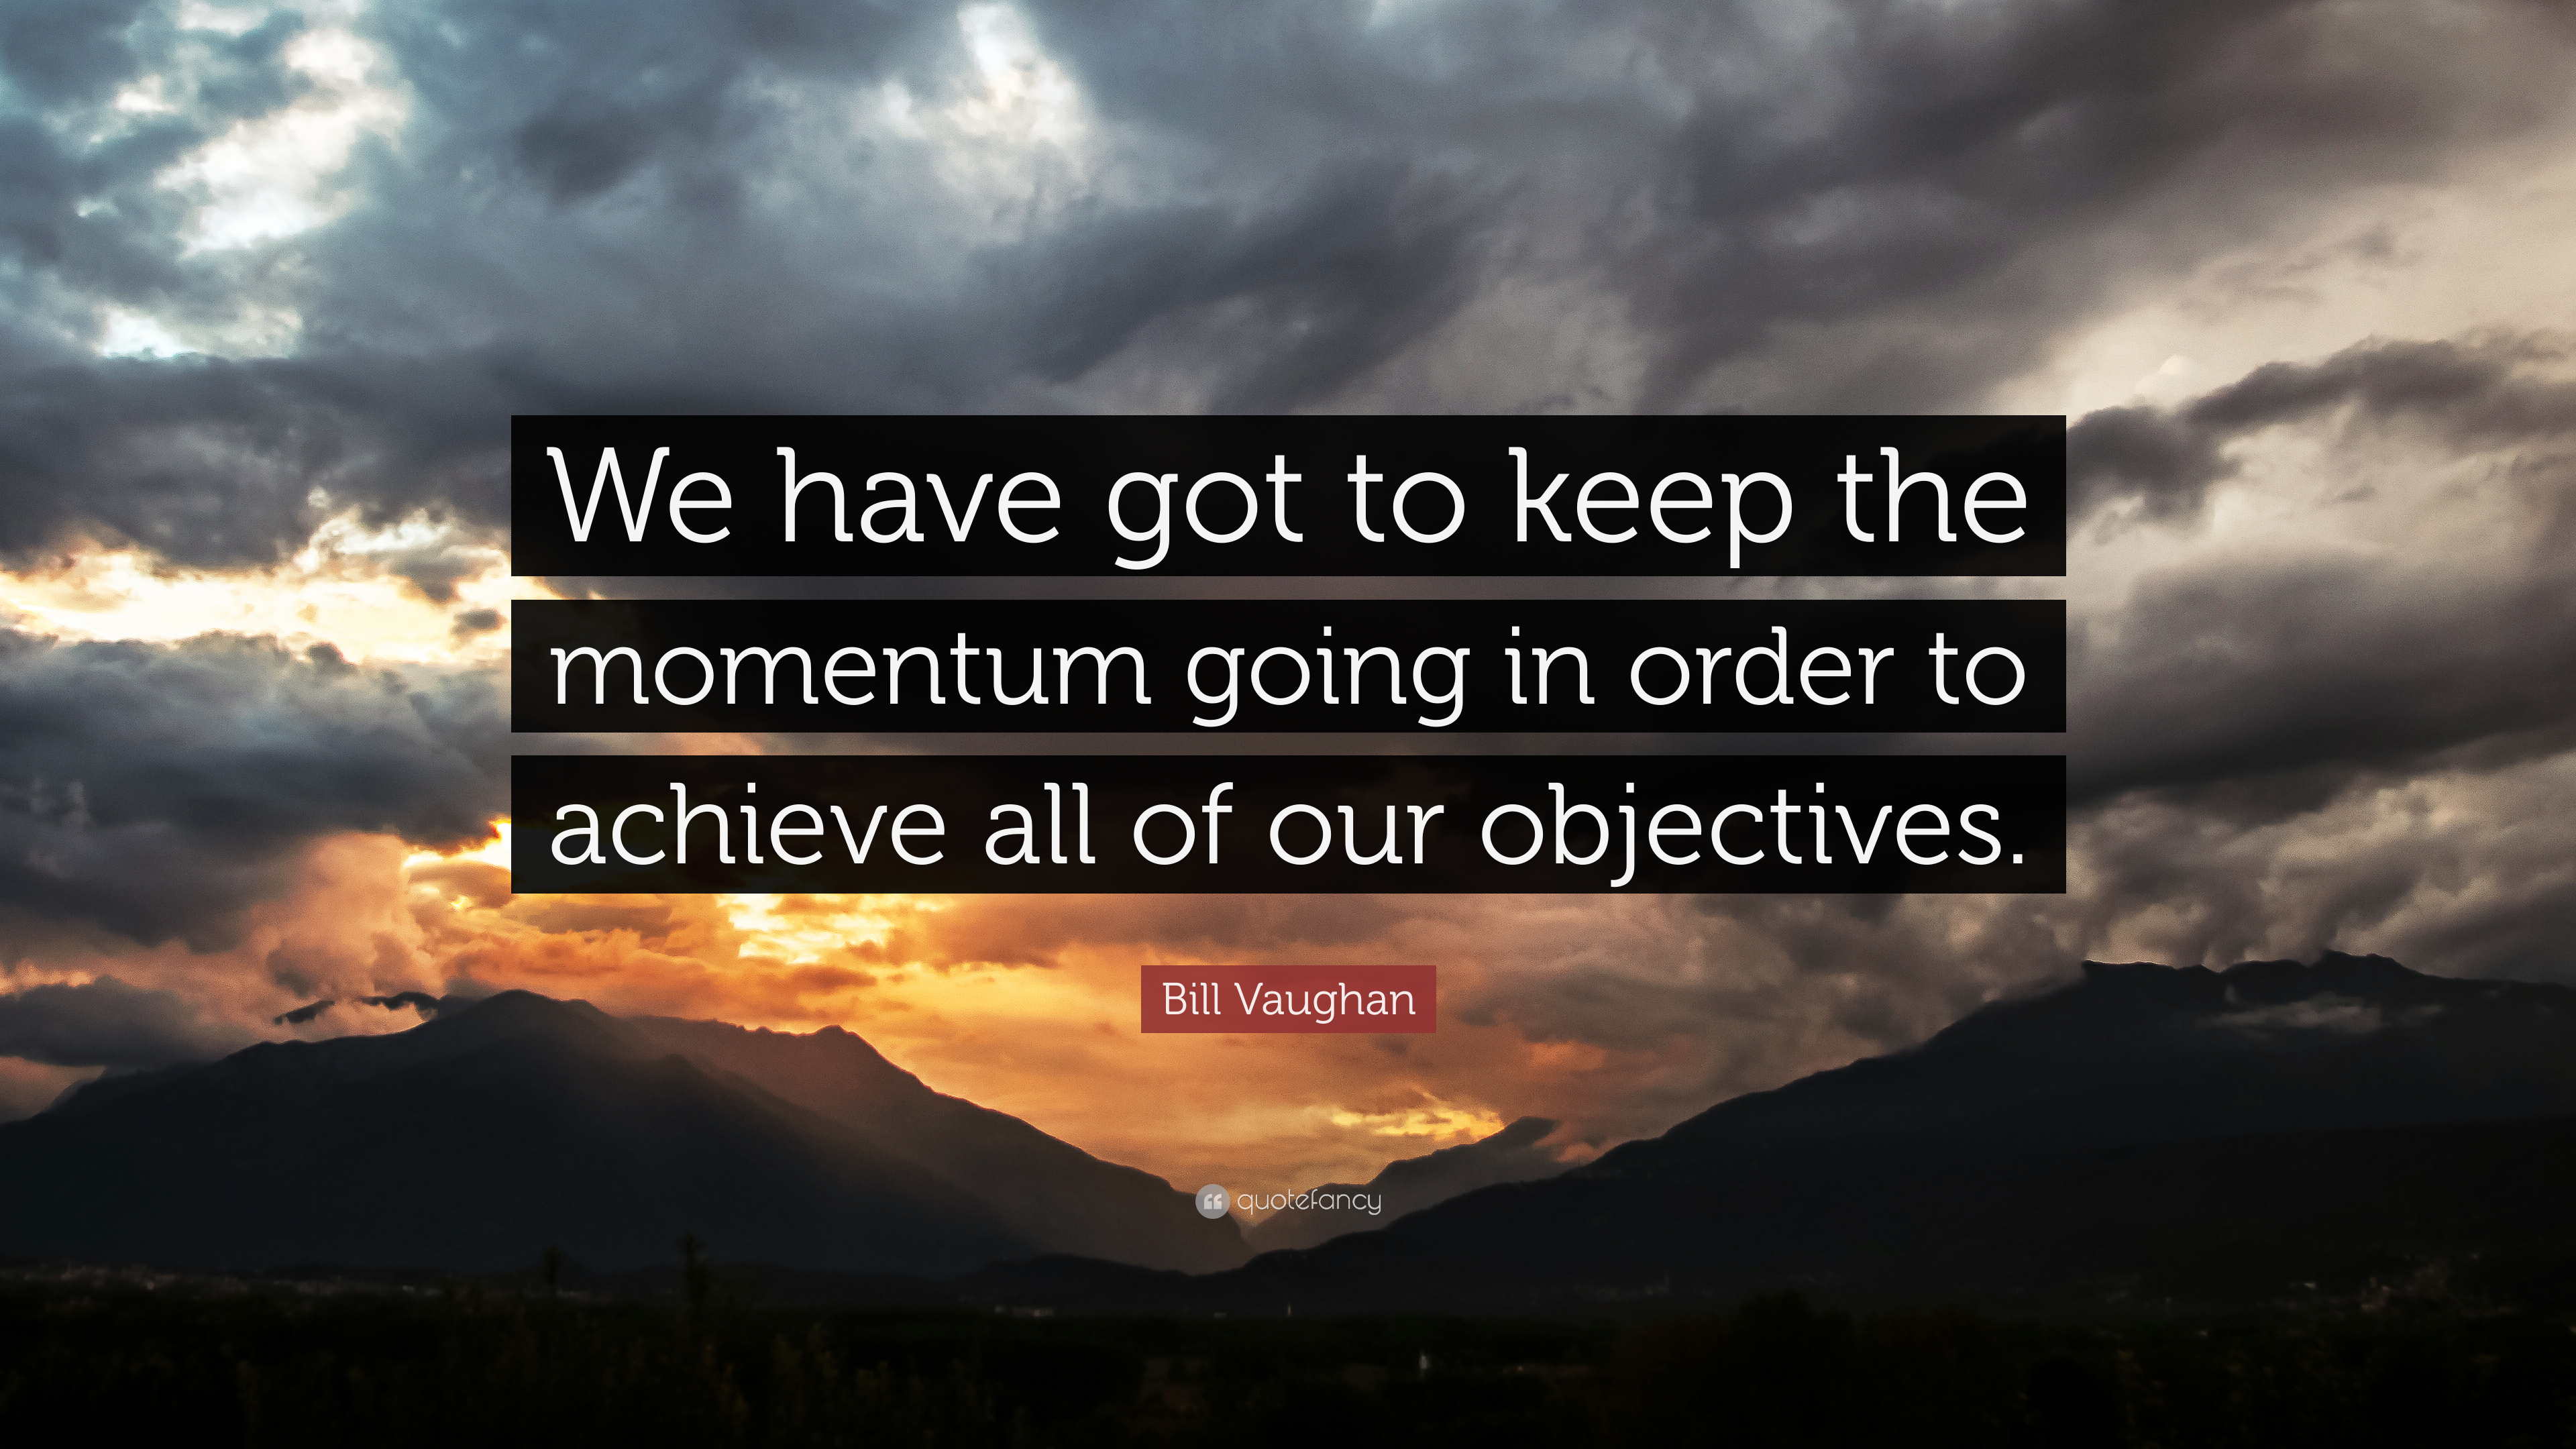 Keep The Momentum Going Quotes: Momentum Quotes (40 Wallpapers)